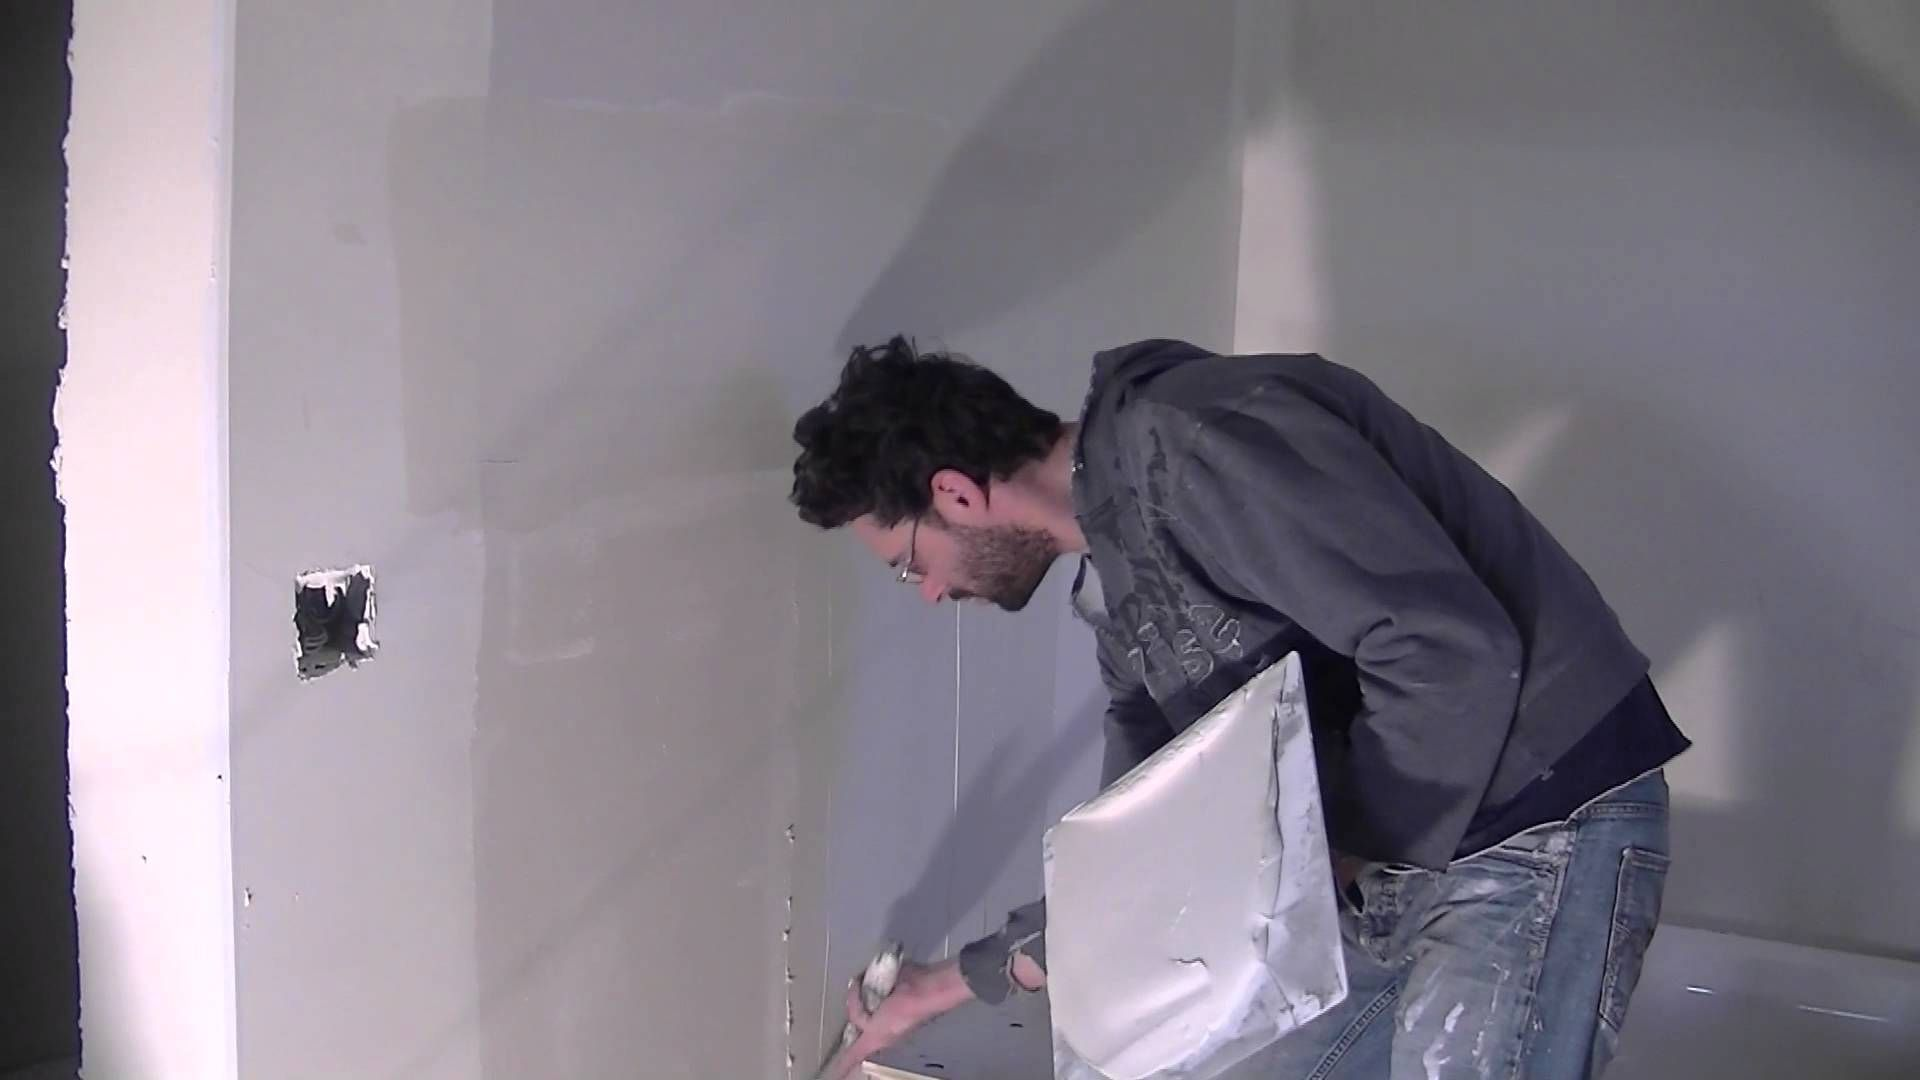 How To Coat Drywall Joints Second Coat Drywall Joint Laundry Clothes